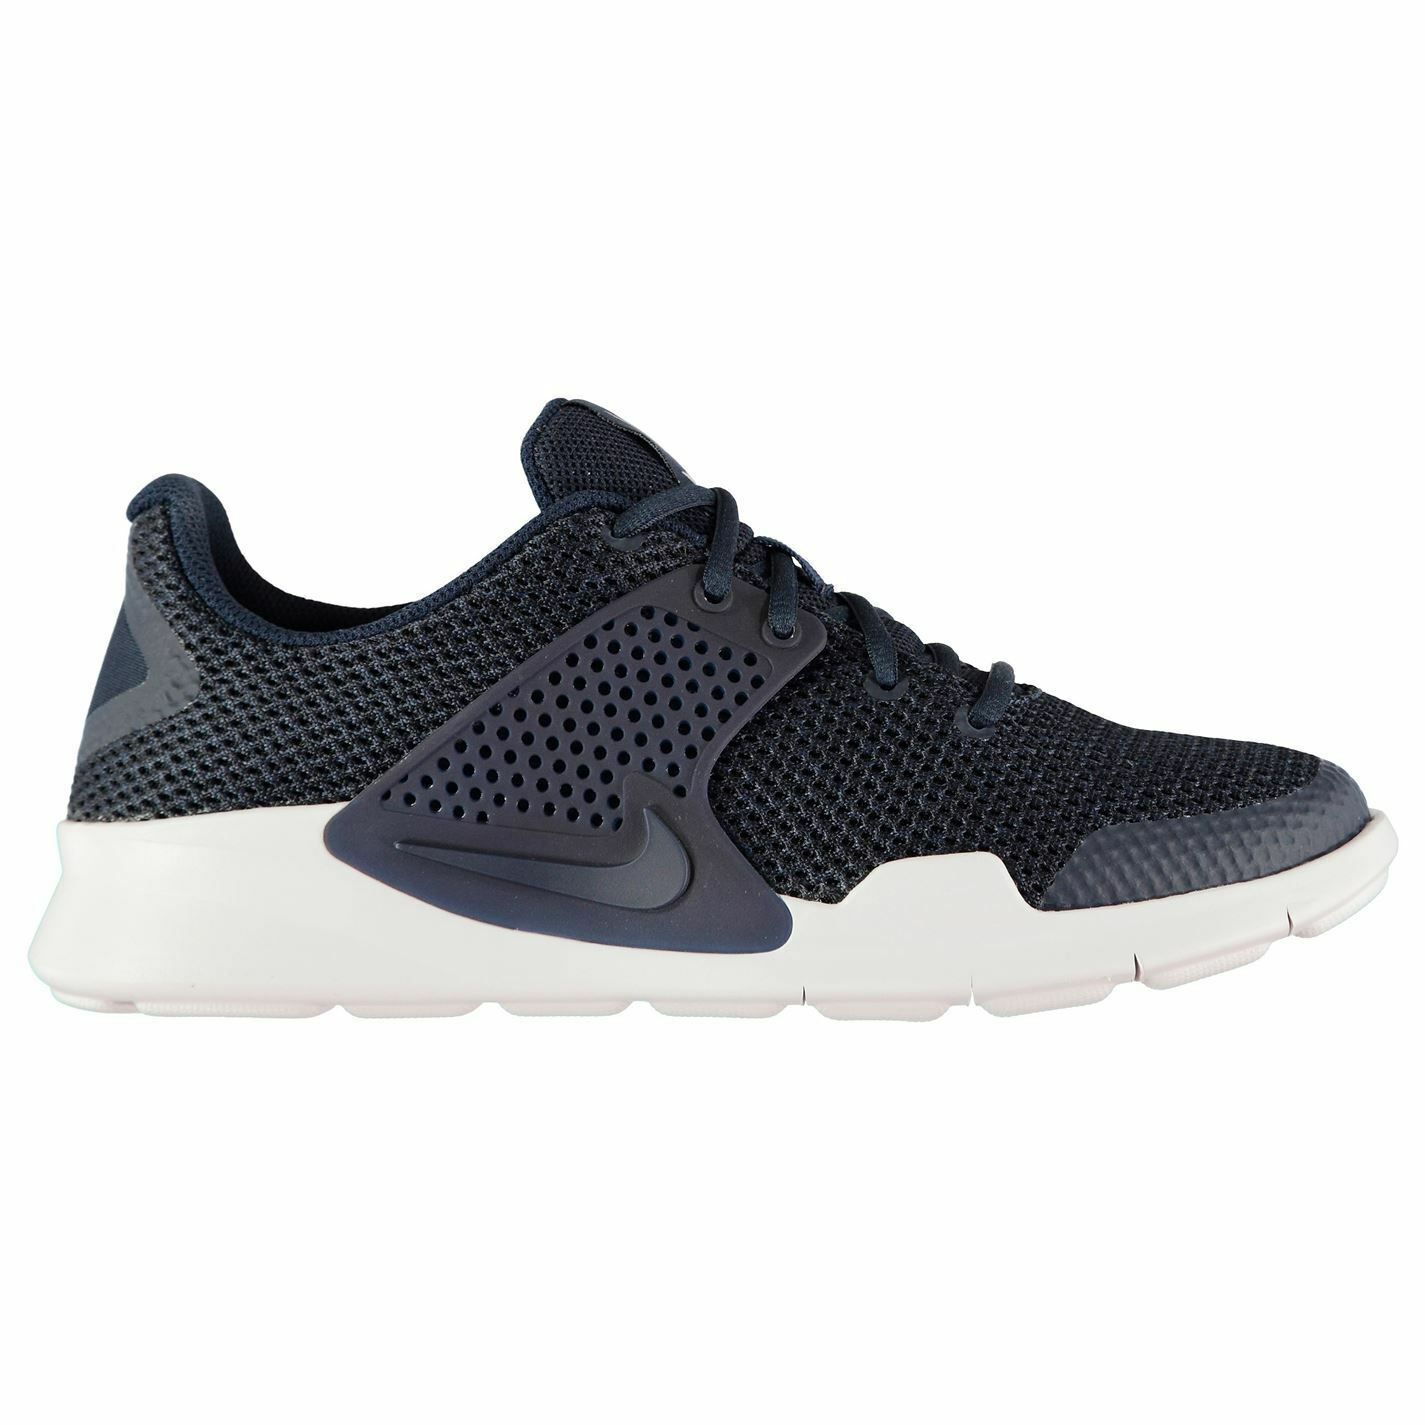 Nike Arrowz Trainers Mens Navy Sports Shoes Sneakers